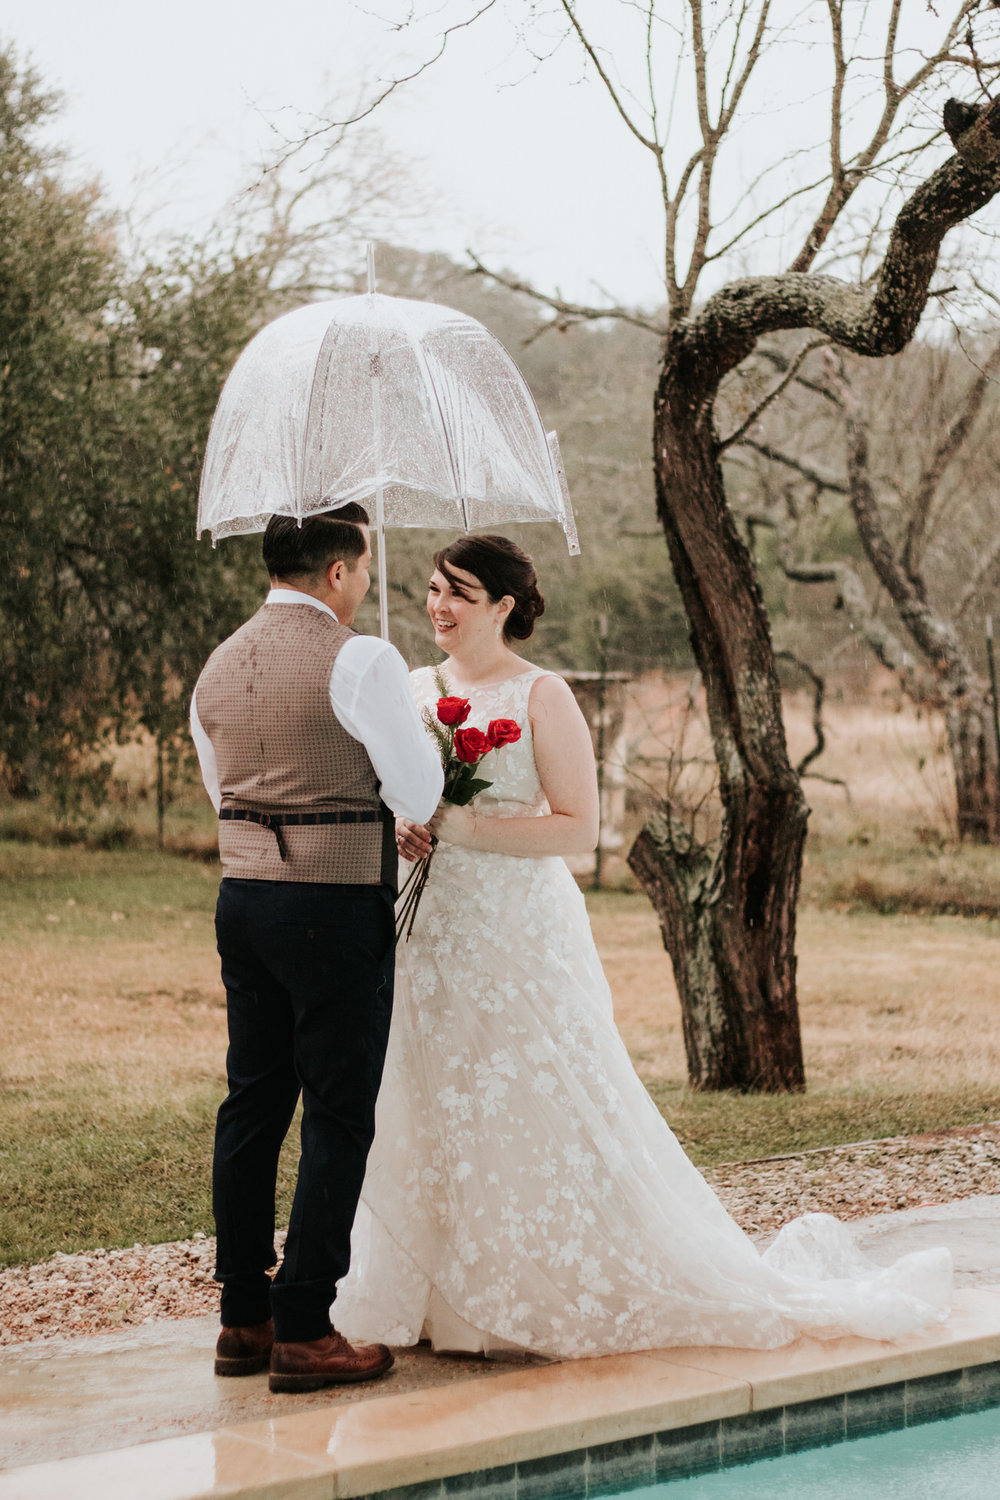 Bride and groom outside in rain under umbrella at Christmas wedding